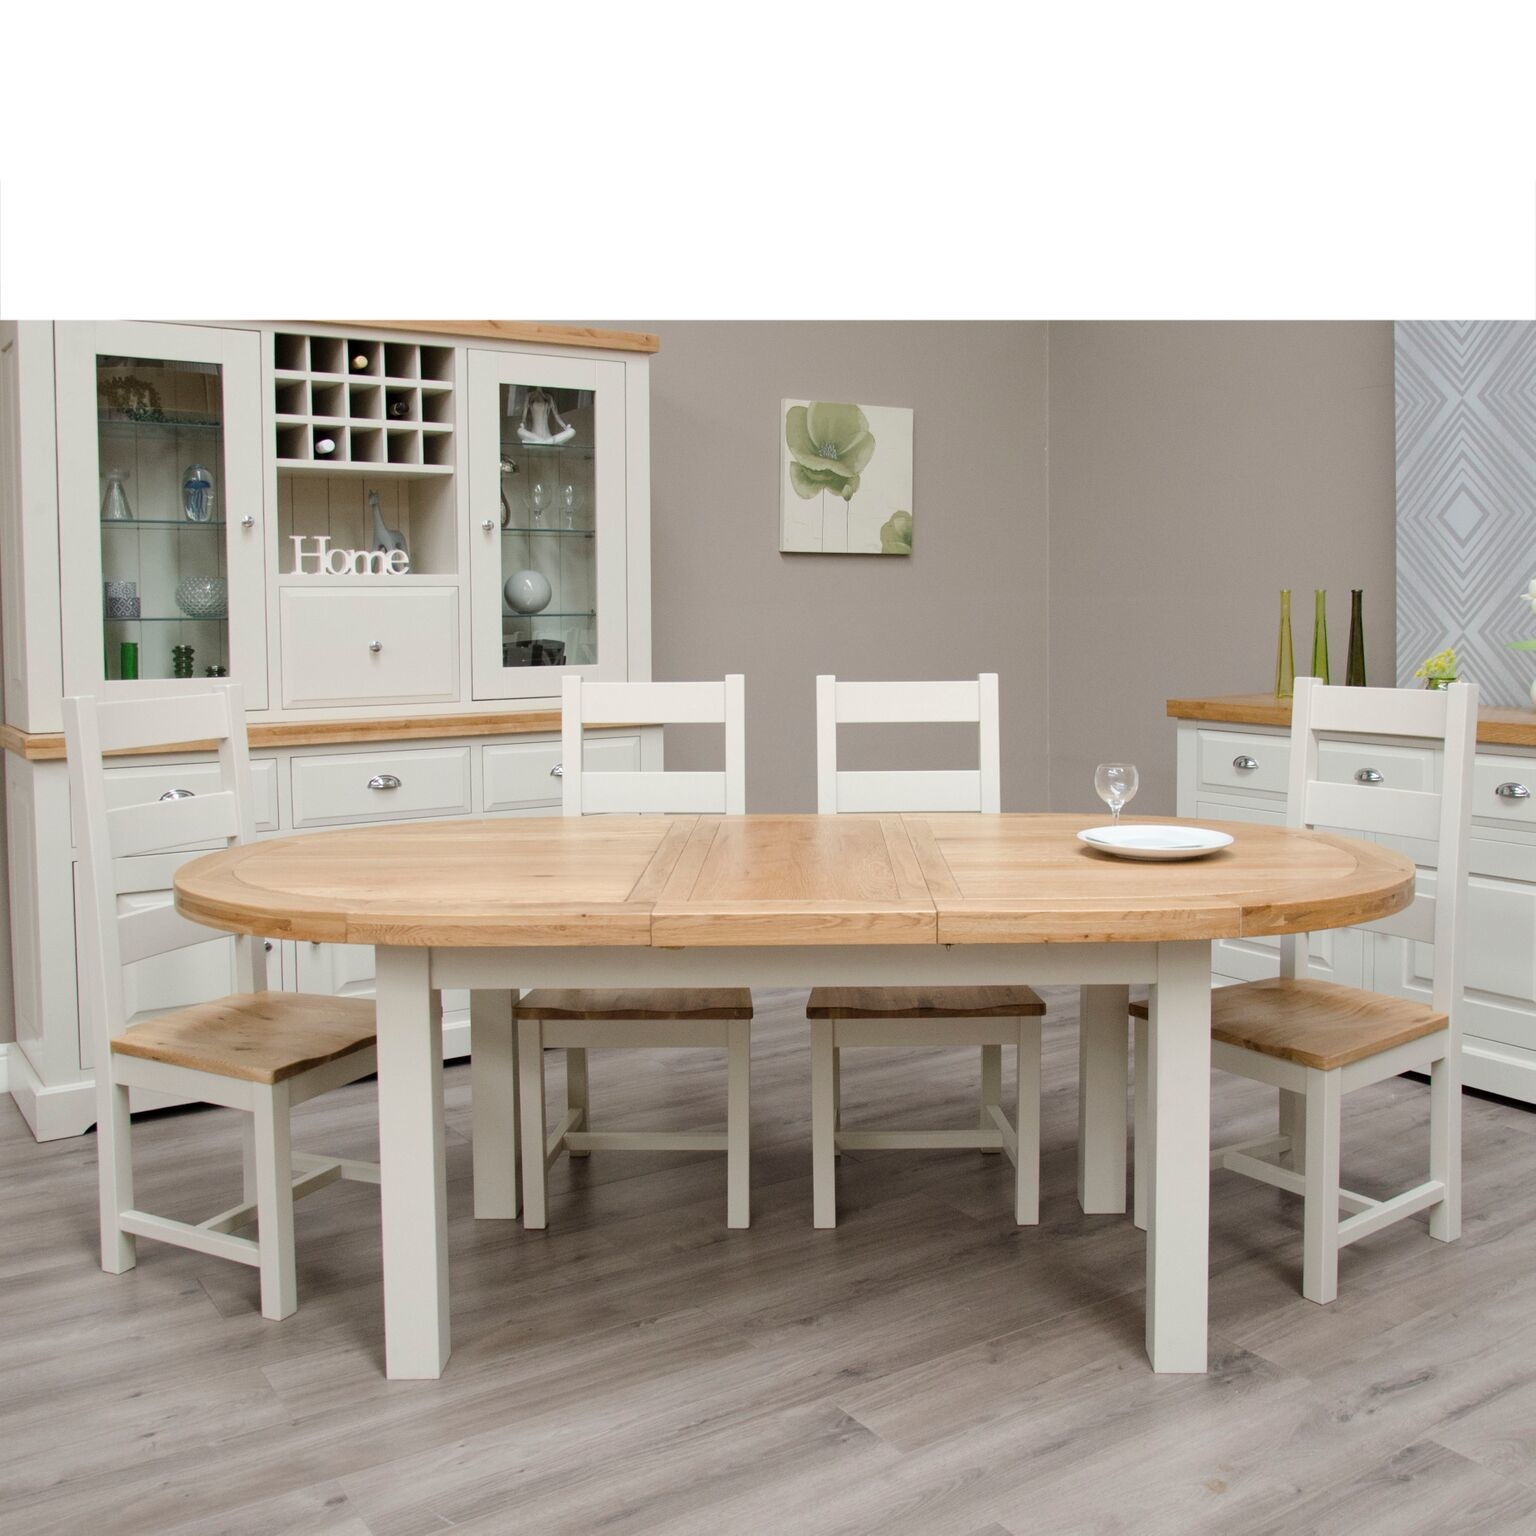 Painted Deluxe Oval Extending Table